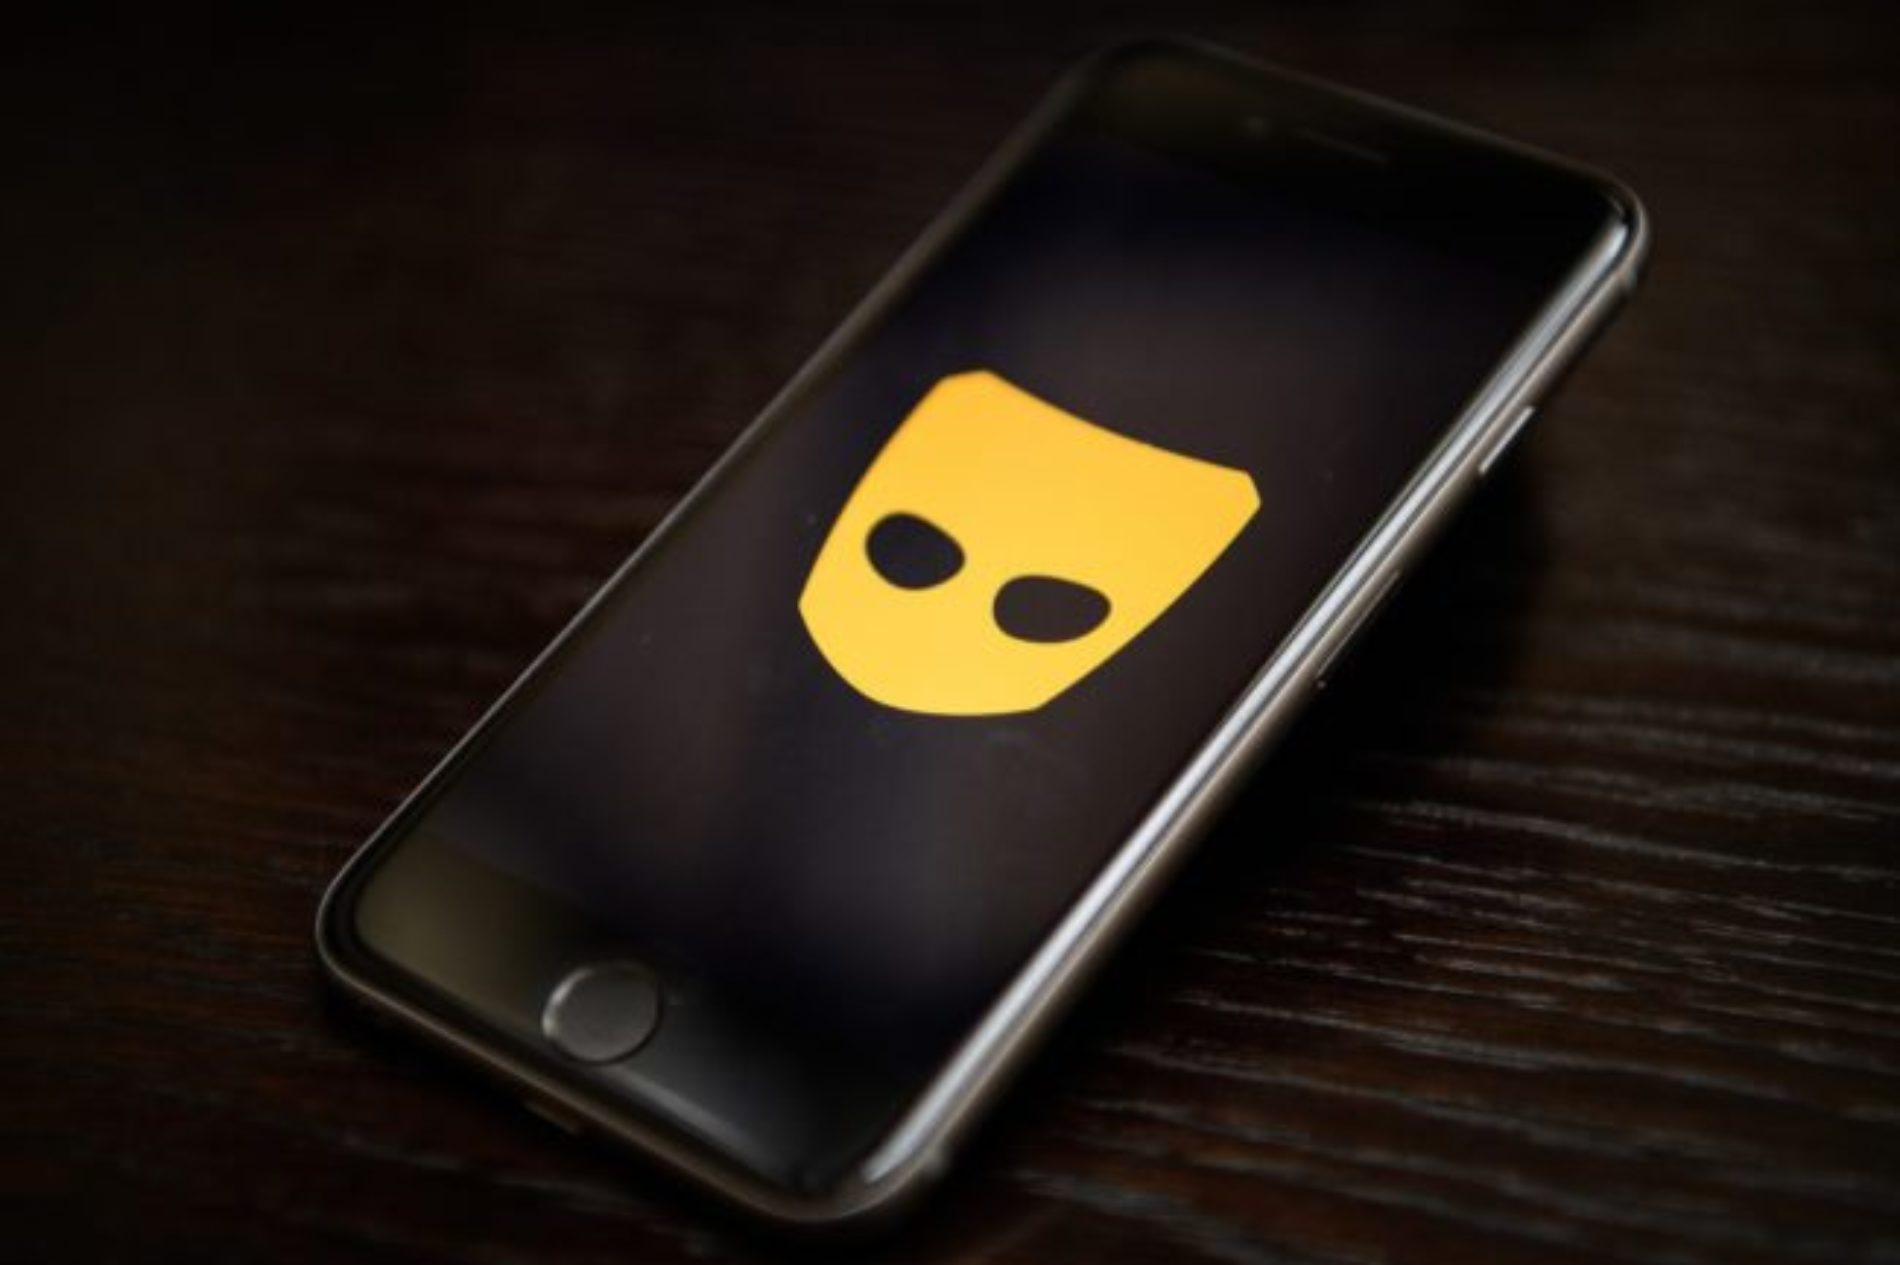 Grindr is no longer 'men-only' as update adds support for women and trans people